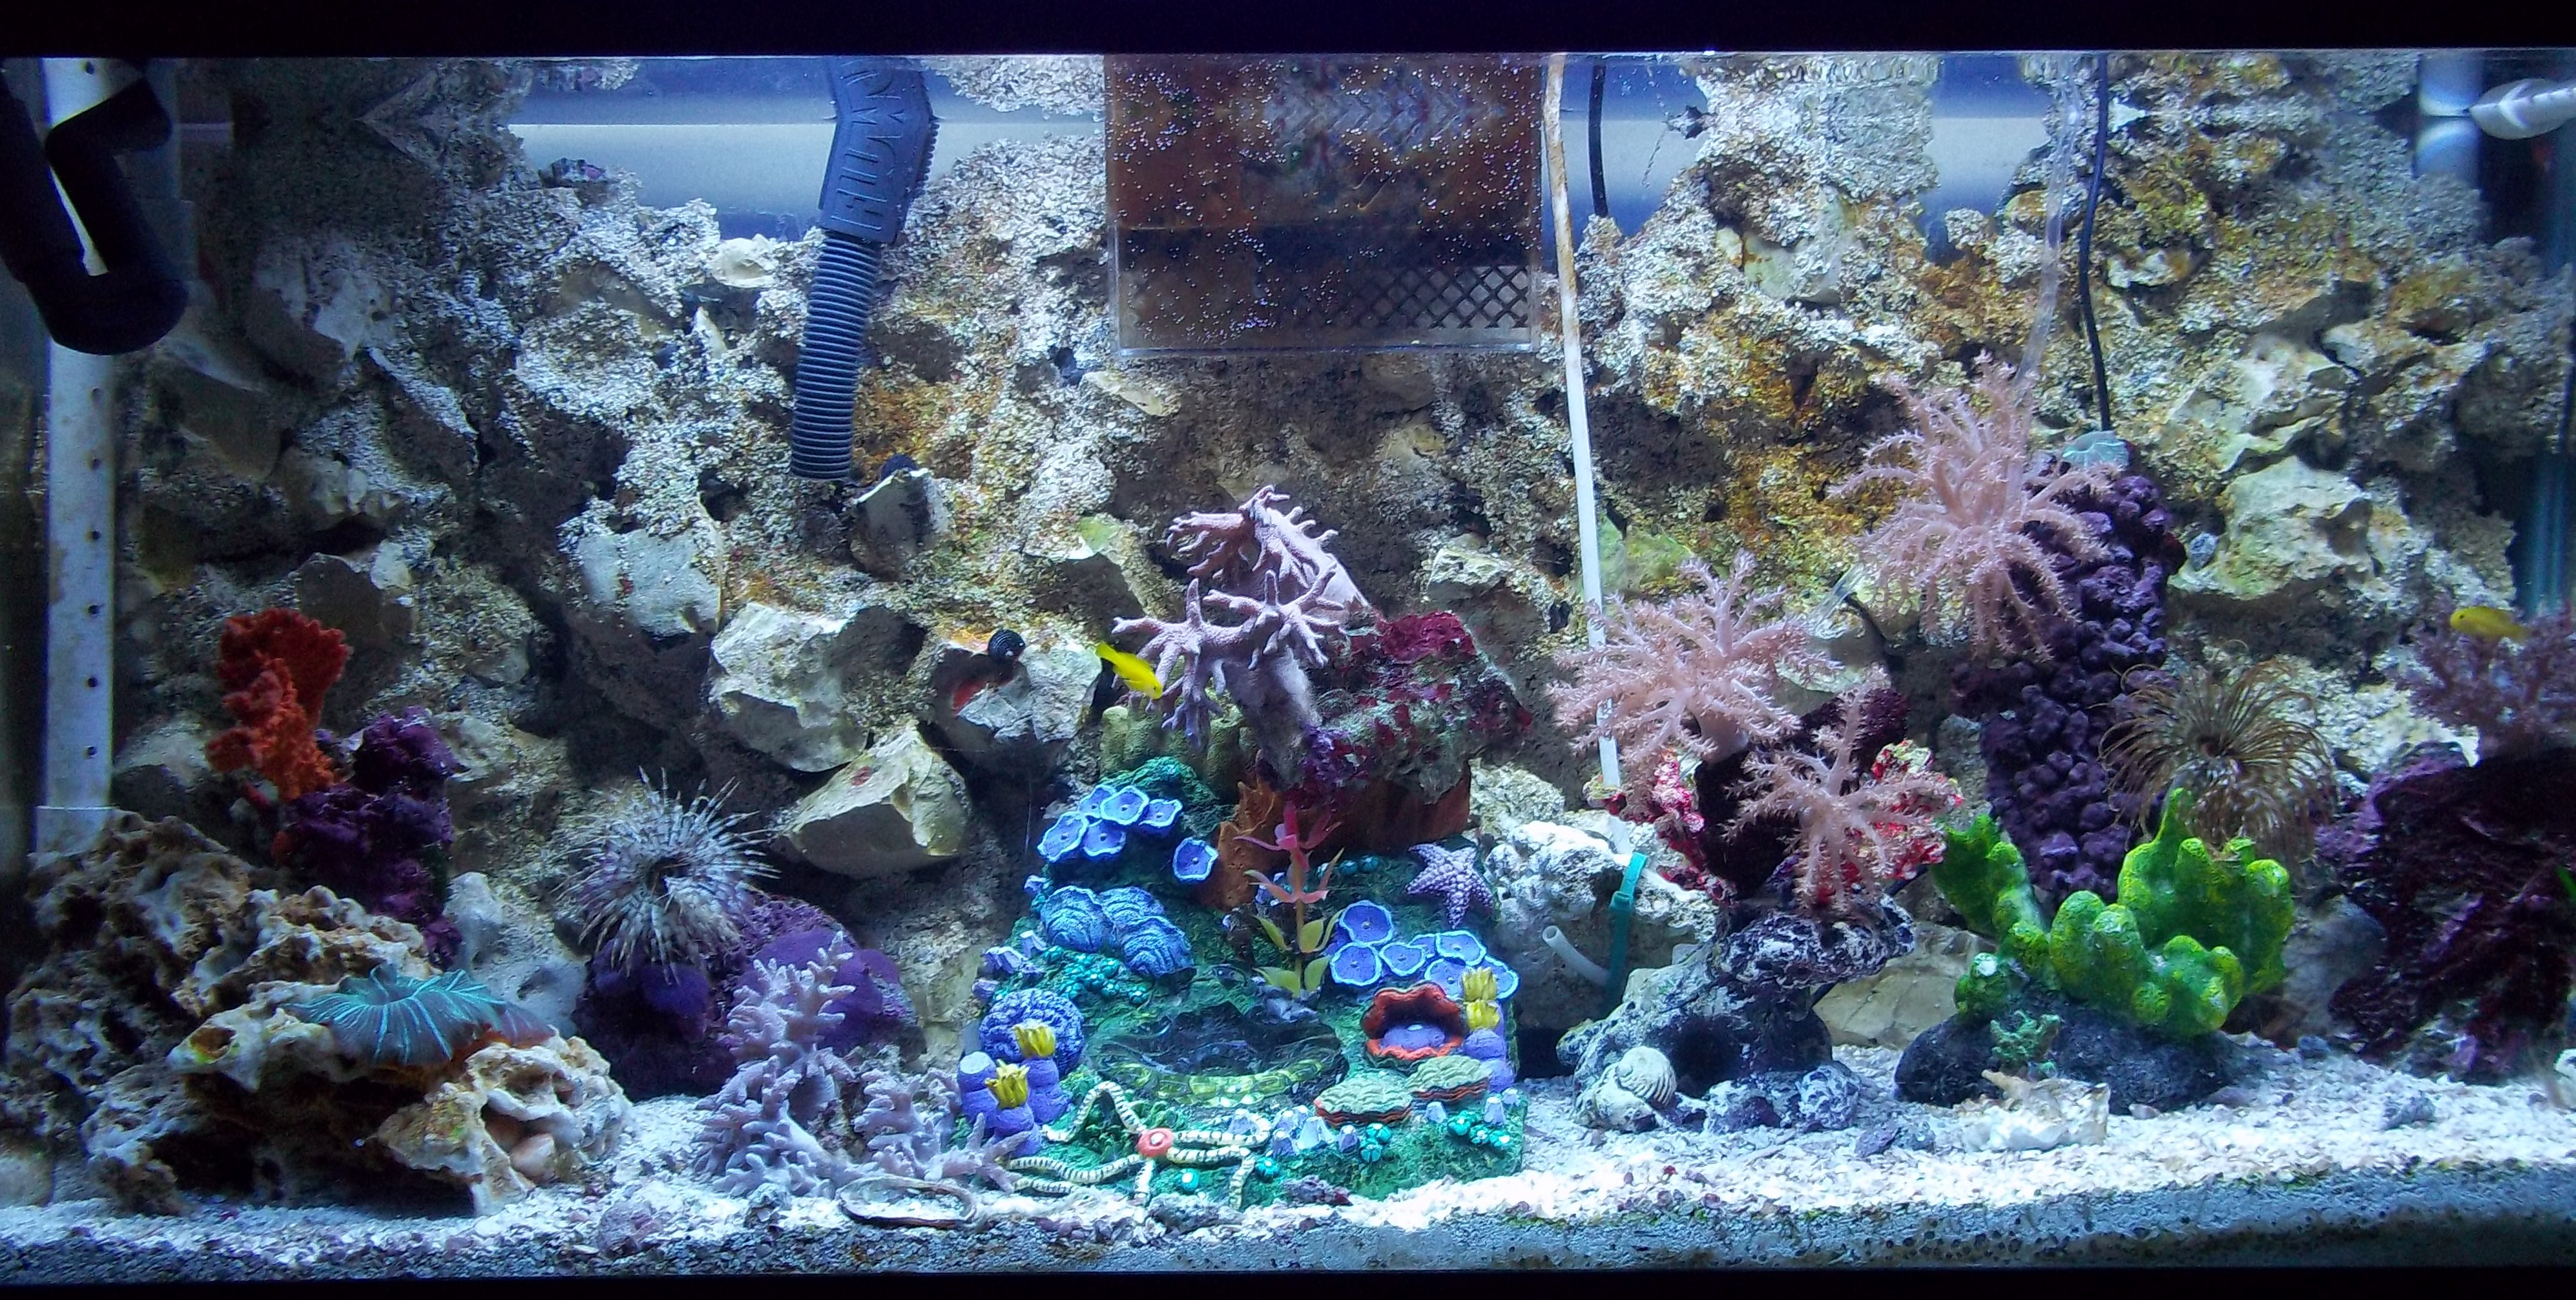 My seahorse tank update pictures saltwaterfish forum for Seahorse fish tank